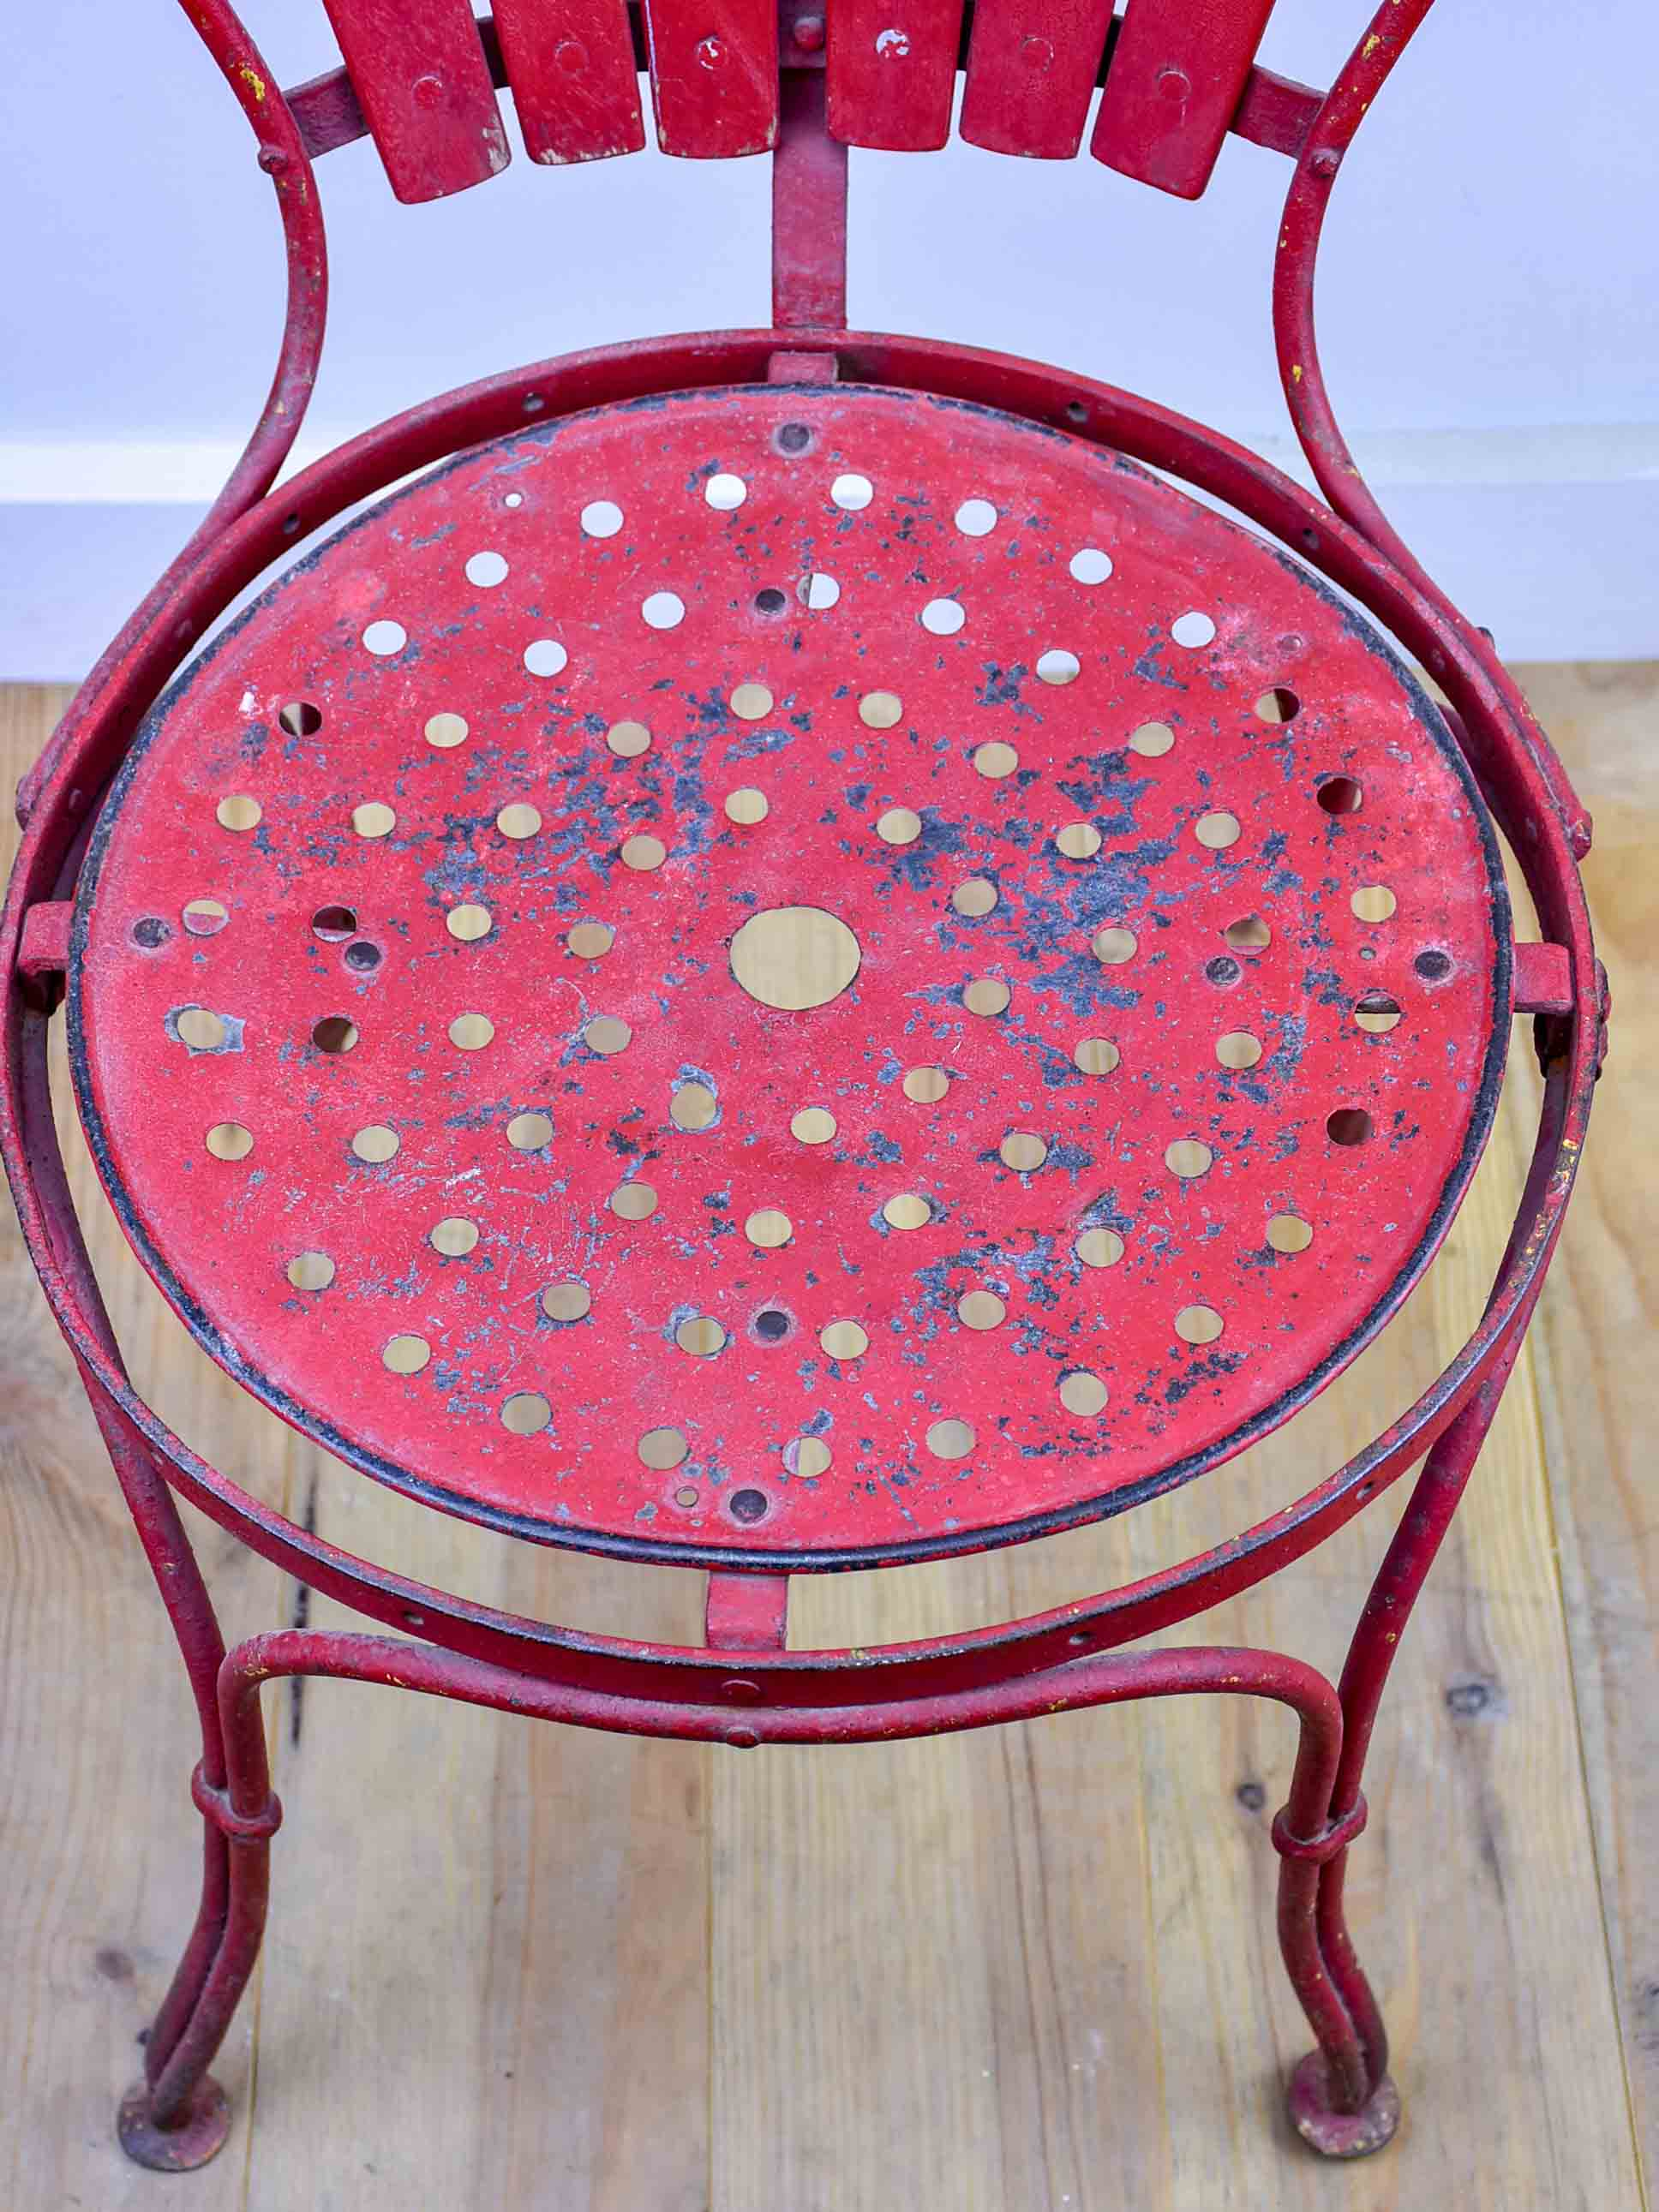 Antique French garden chair - red